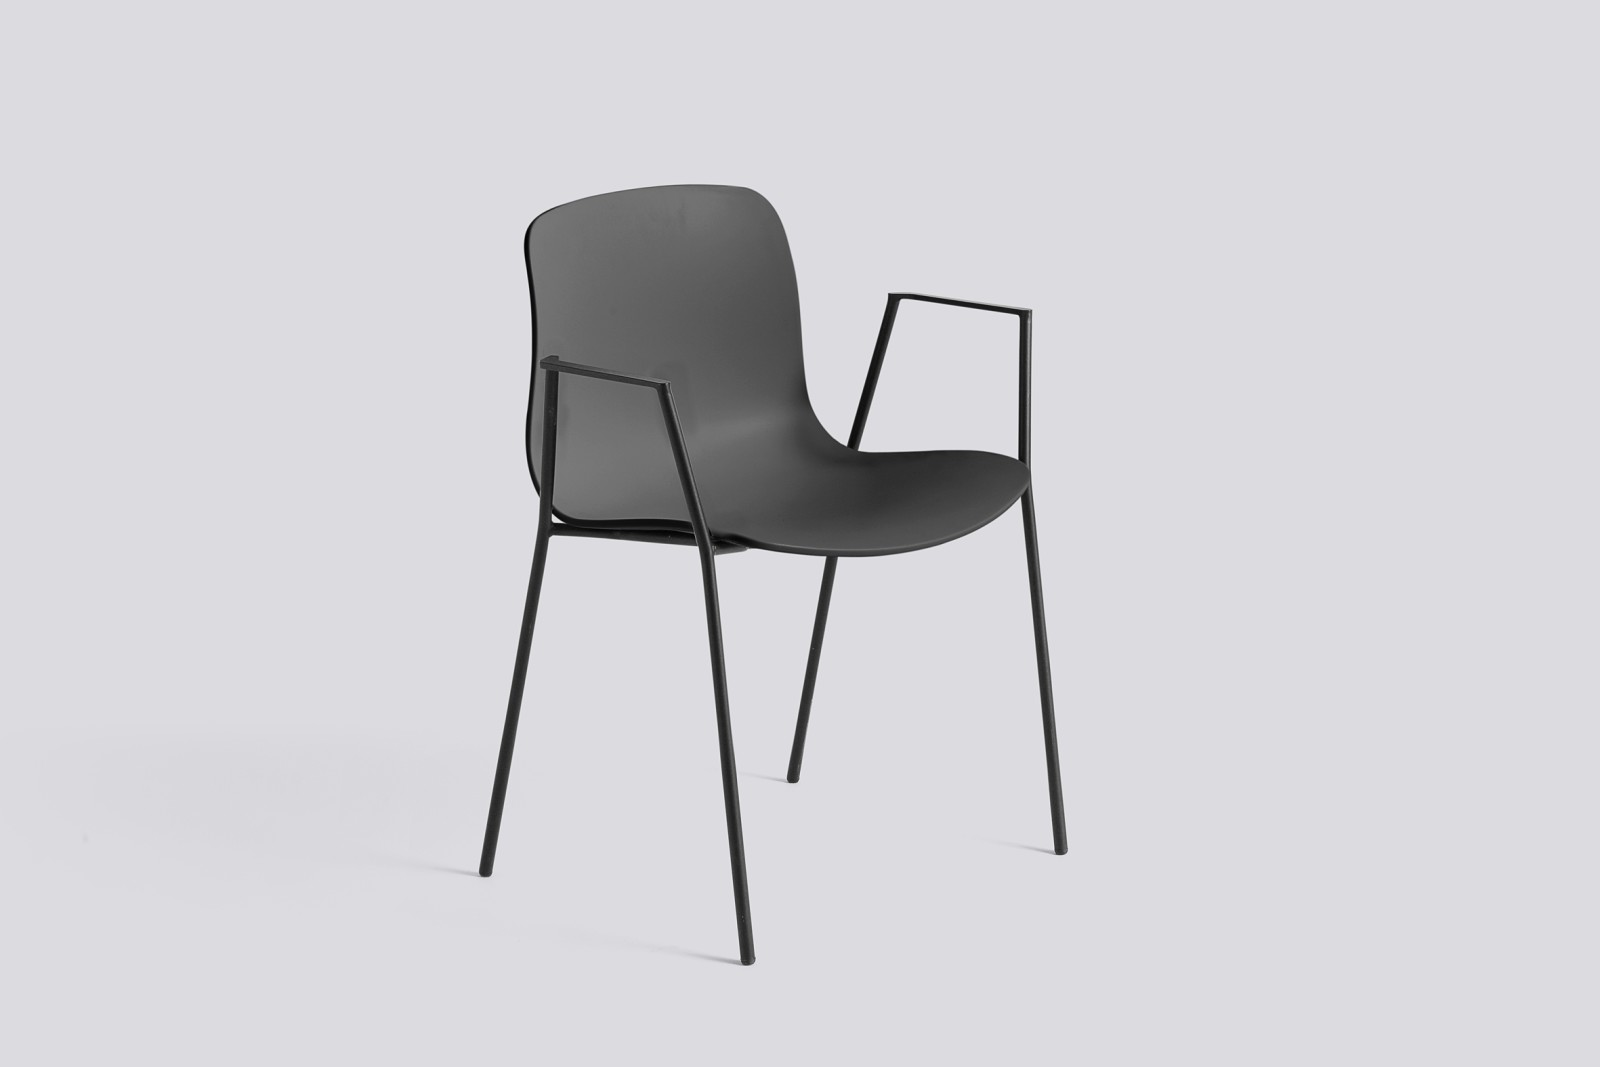 About A Chair AAC18 Soft black, Black Powder Coated Steel